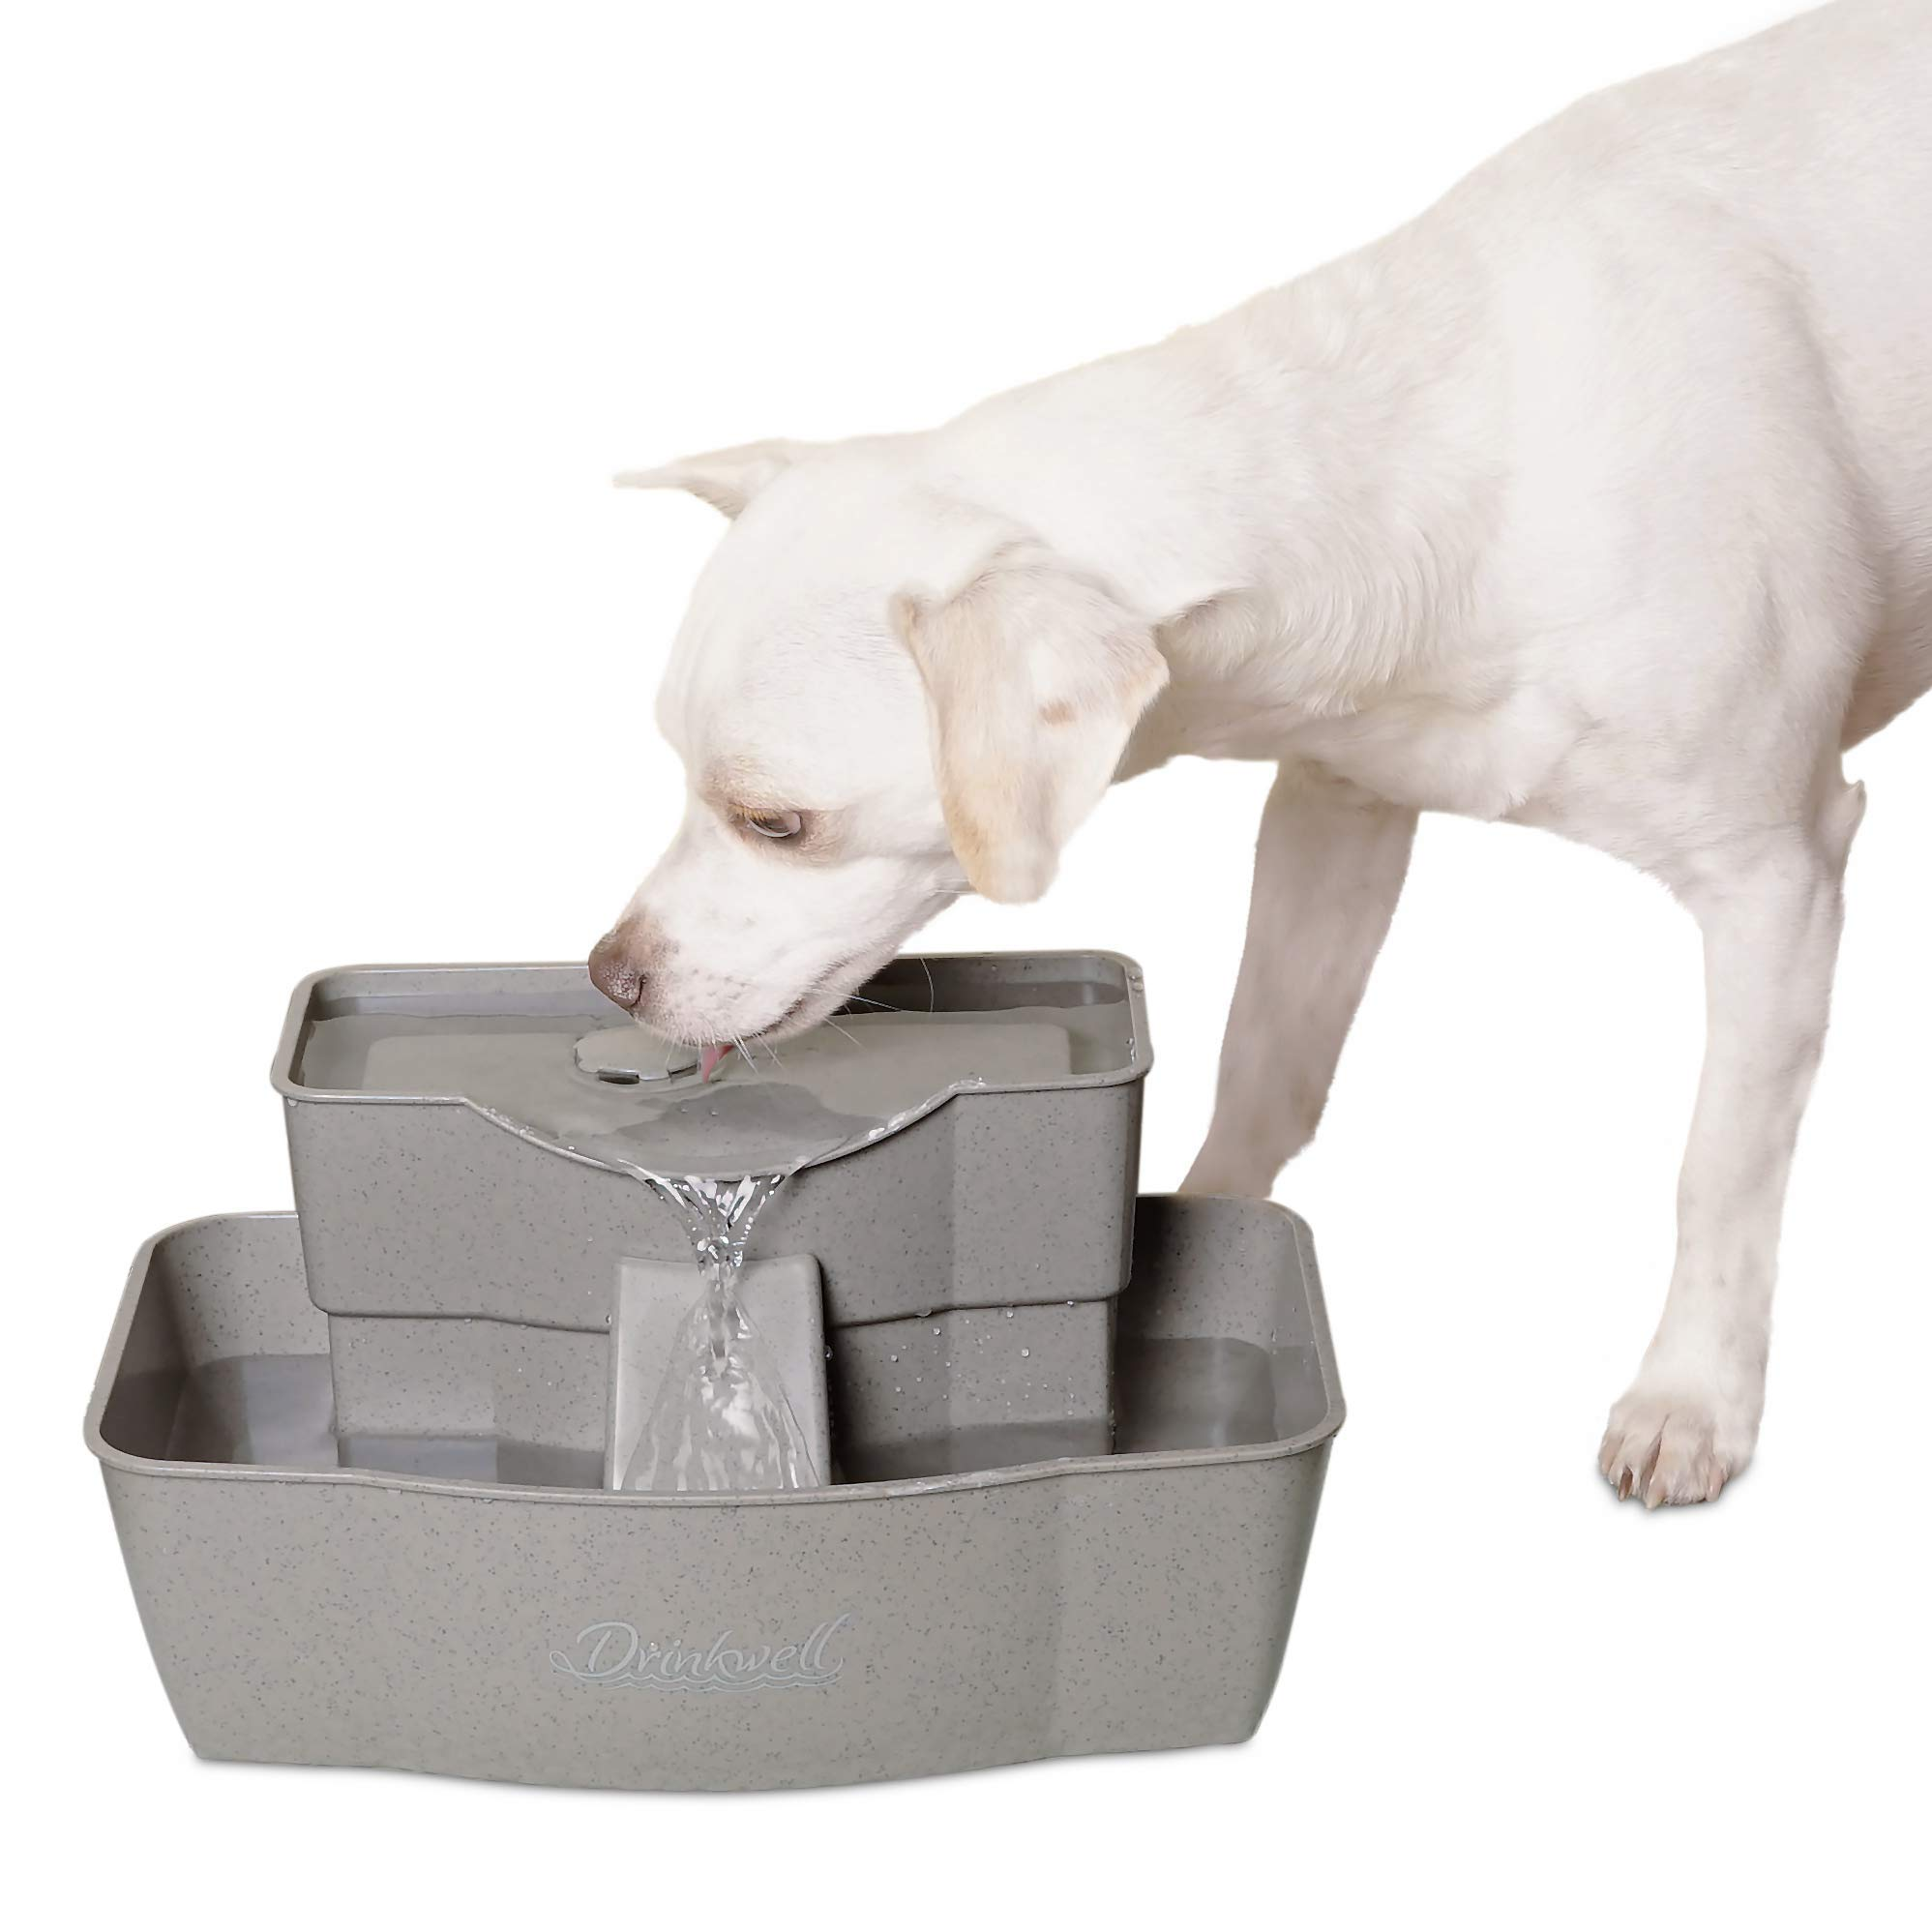 PetSafe Drinkwell Multi-Tier Dog and Cat Water Fountain, Automatic Drinking Fountain for Pets, 100 oz. Water Capacity - PWW00-13708 by PetSafe (Image #3)